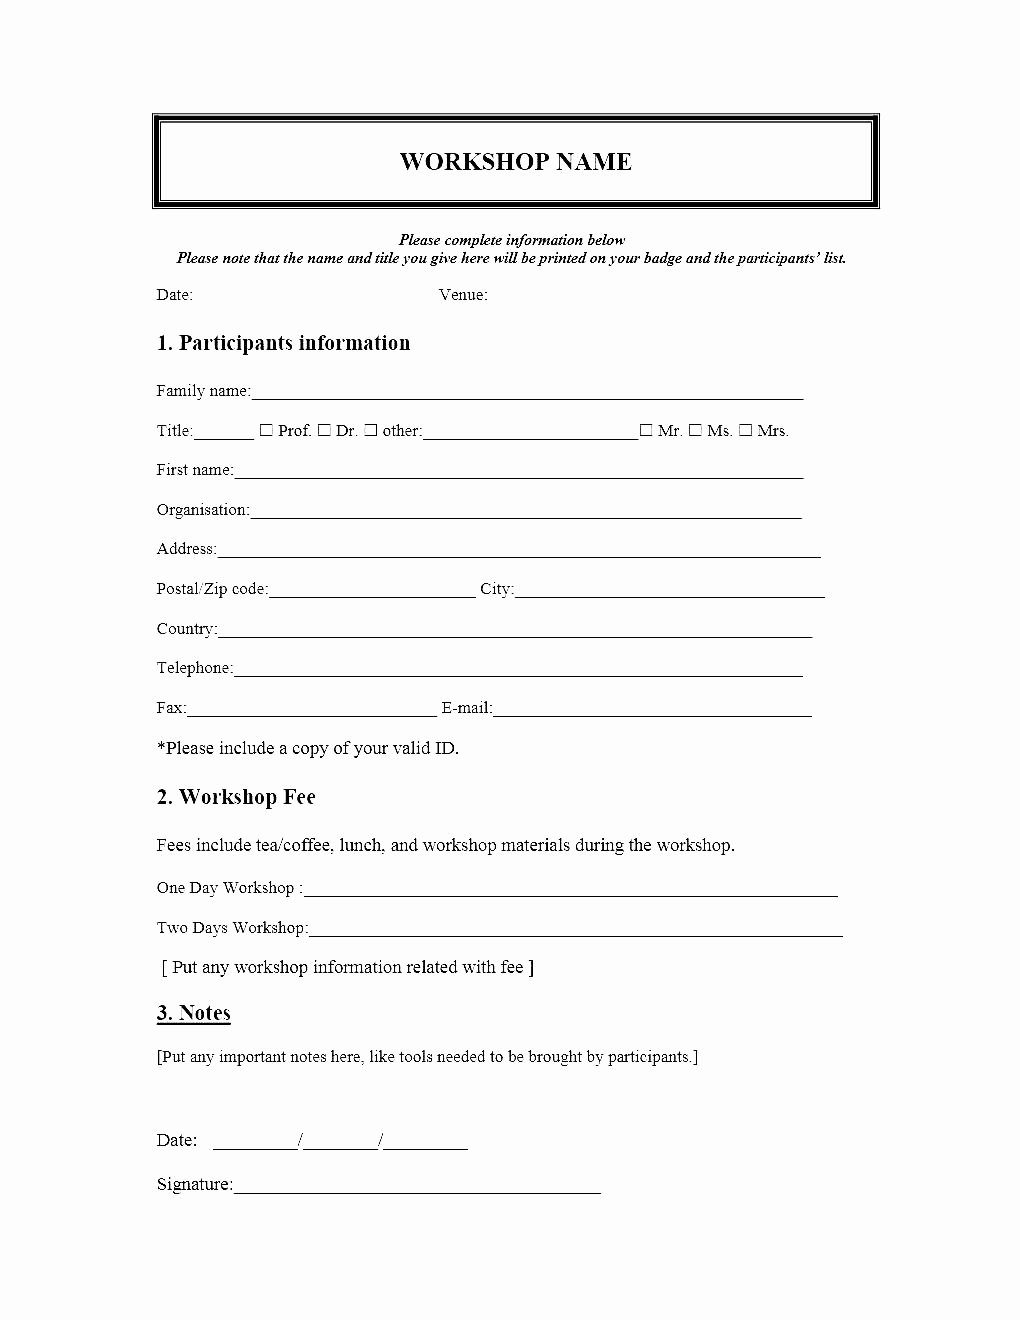 Sports Registration form Template Luxury Sports Registration form Template Free – Versatolelive